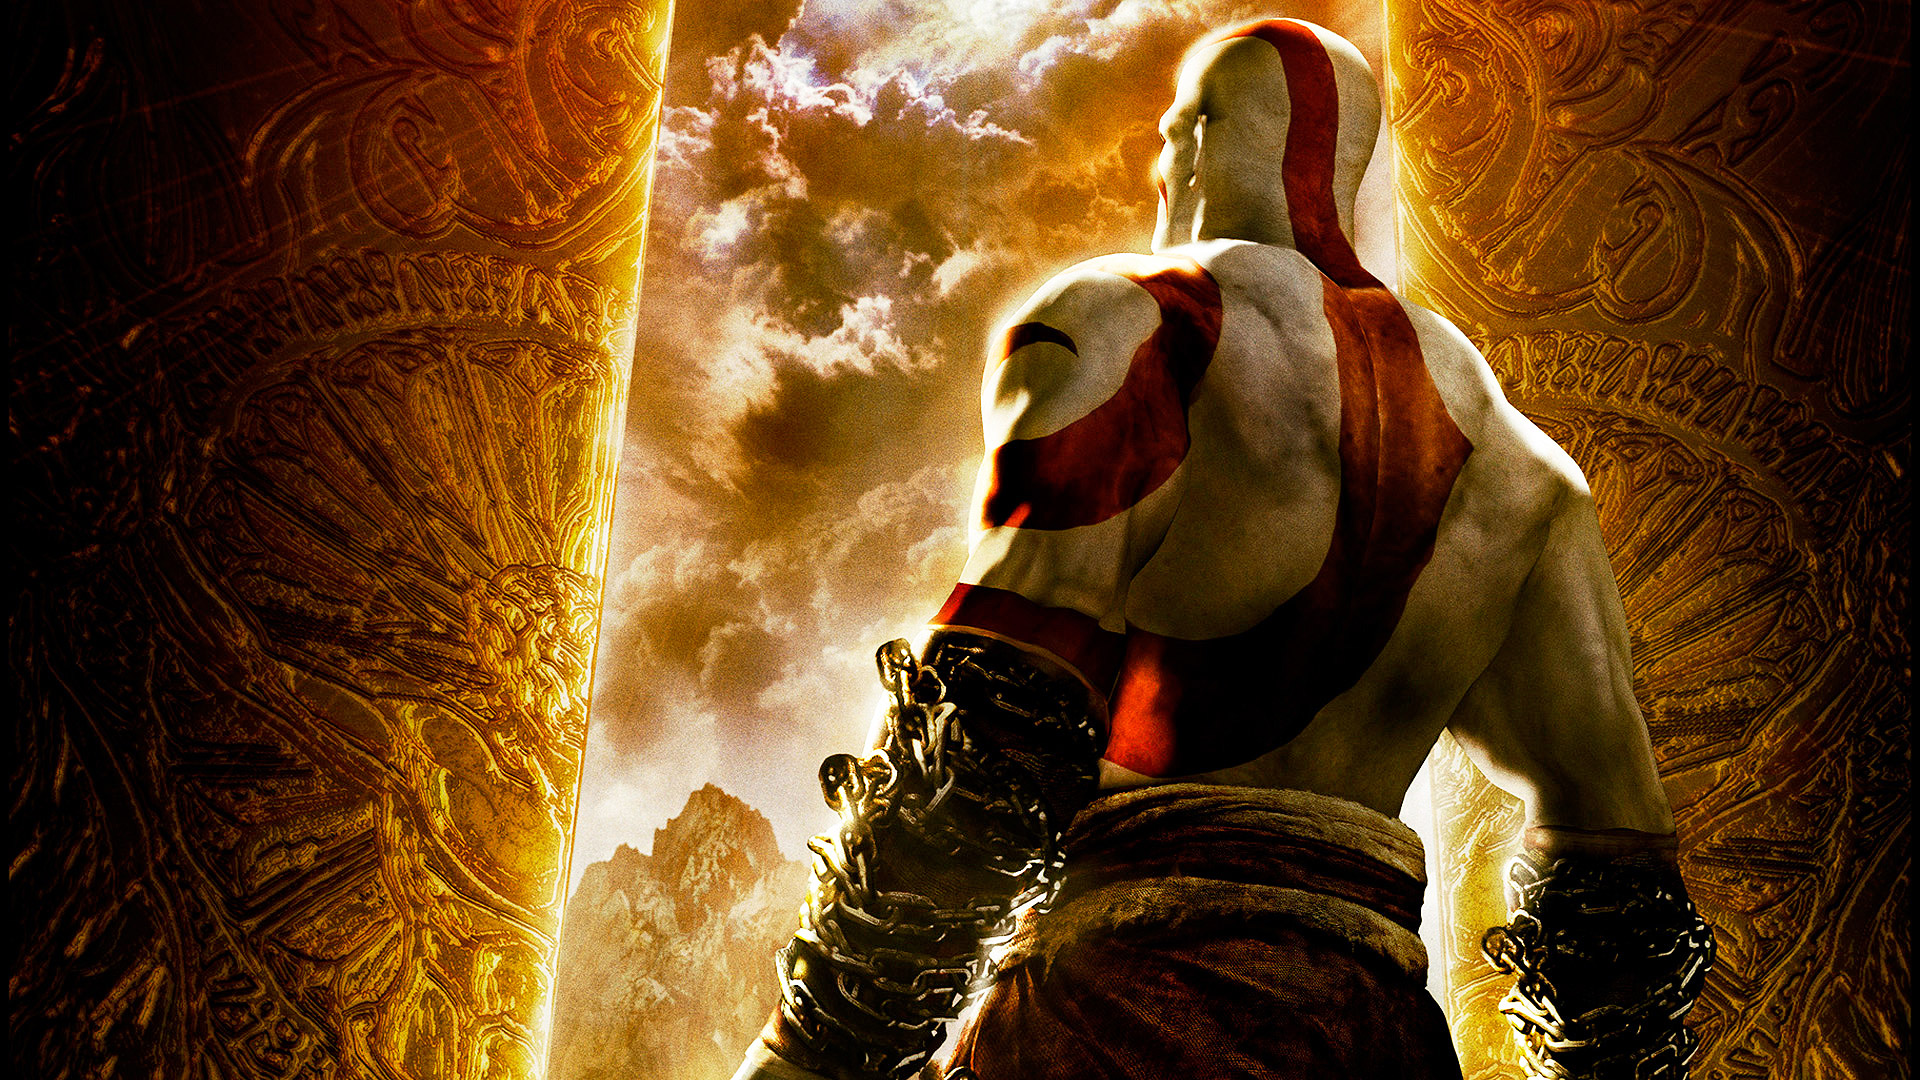 Free Download Games Wallpapers God Of War 3 Wallpaper Kratos